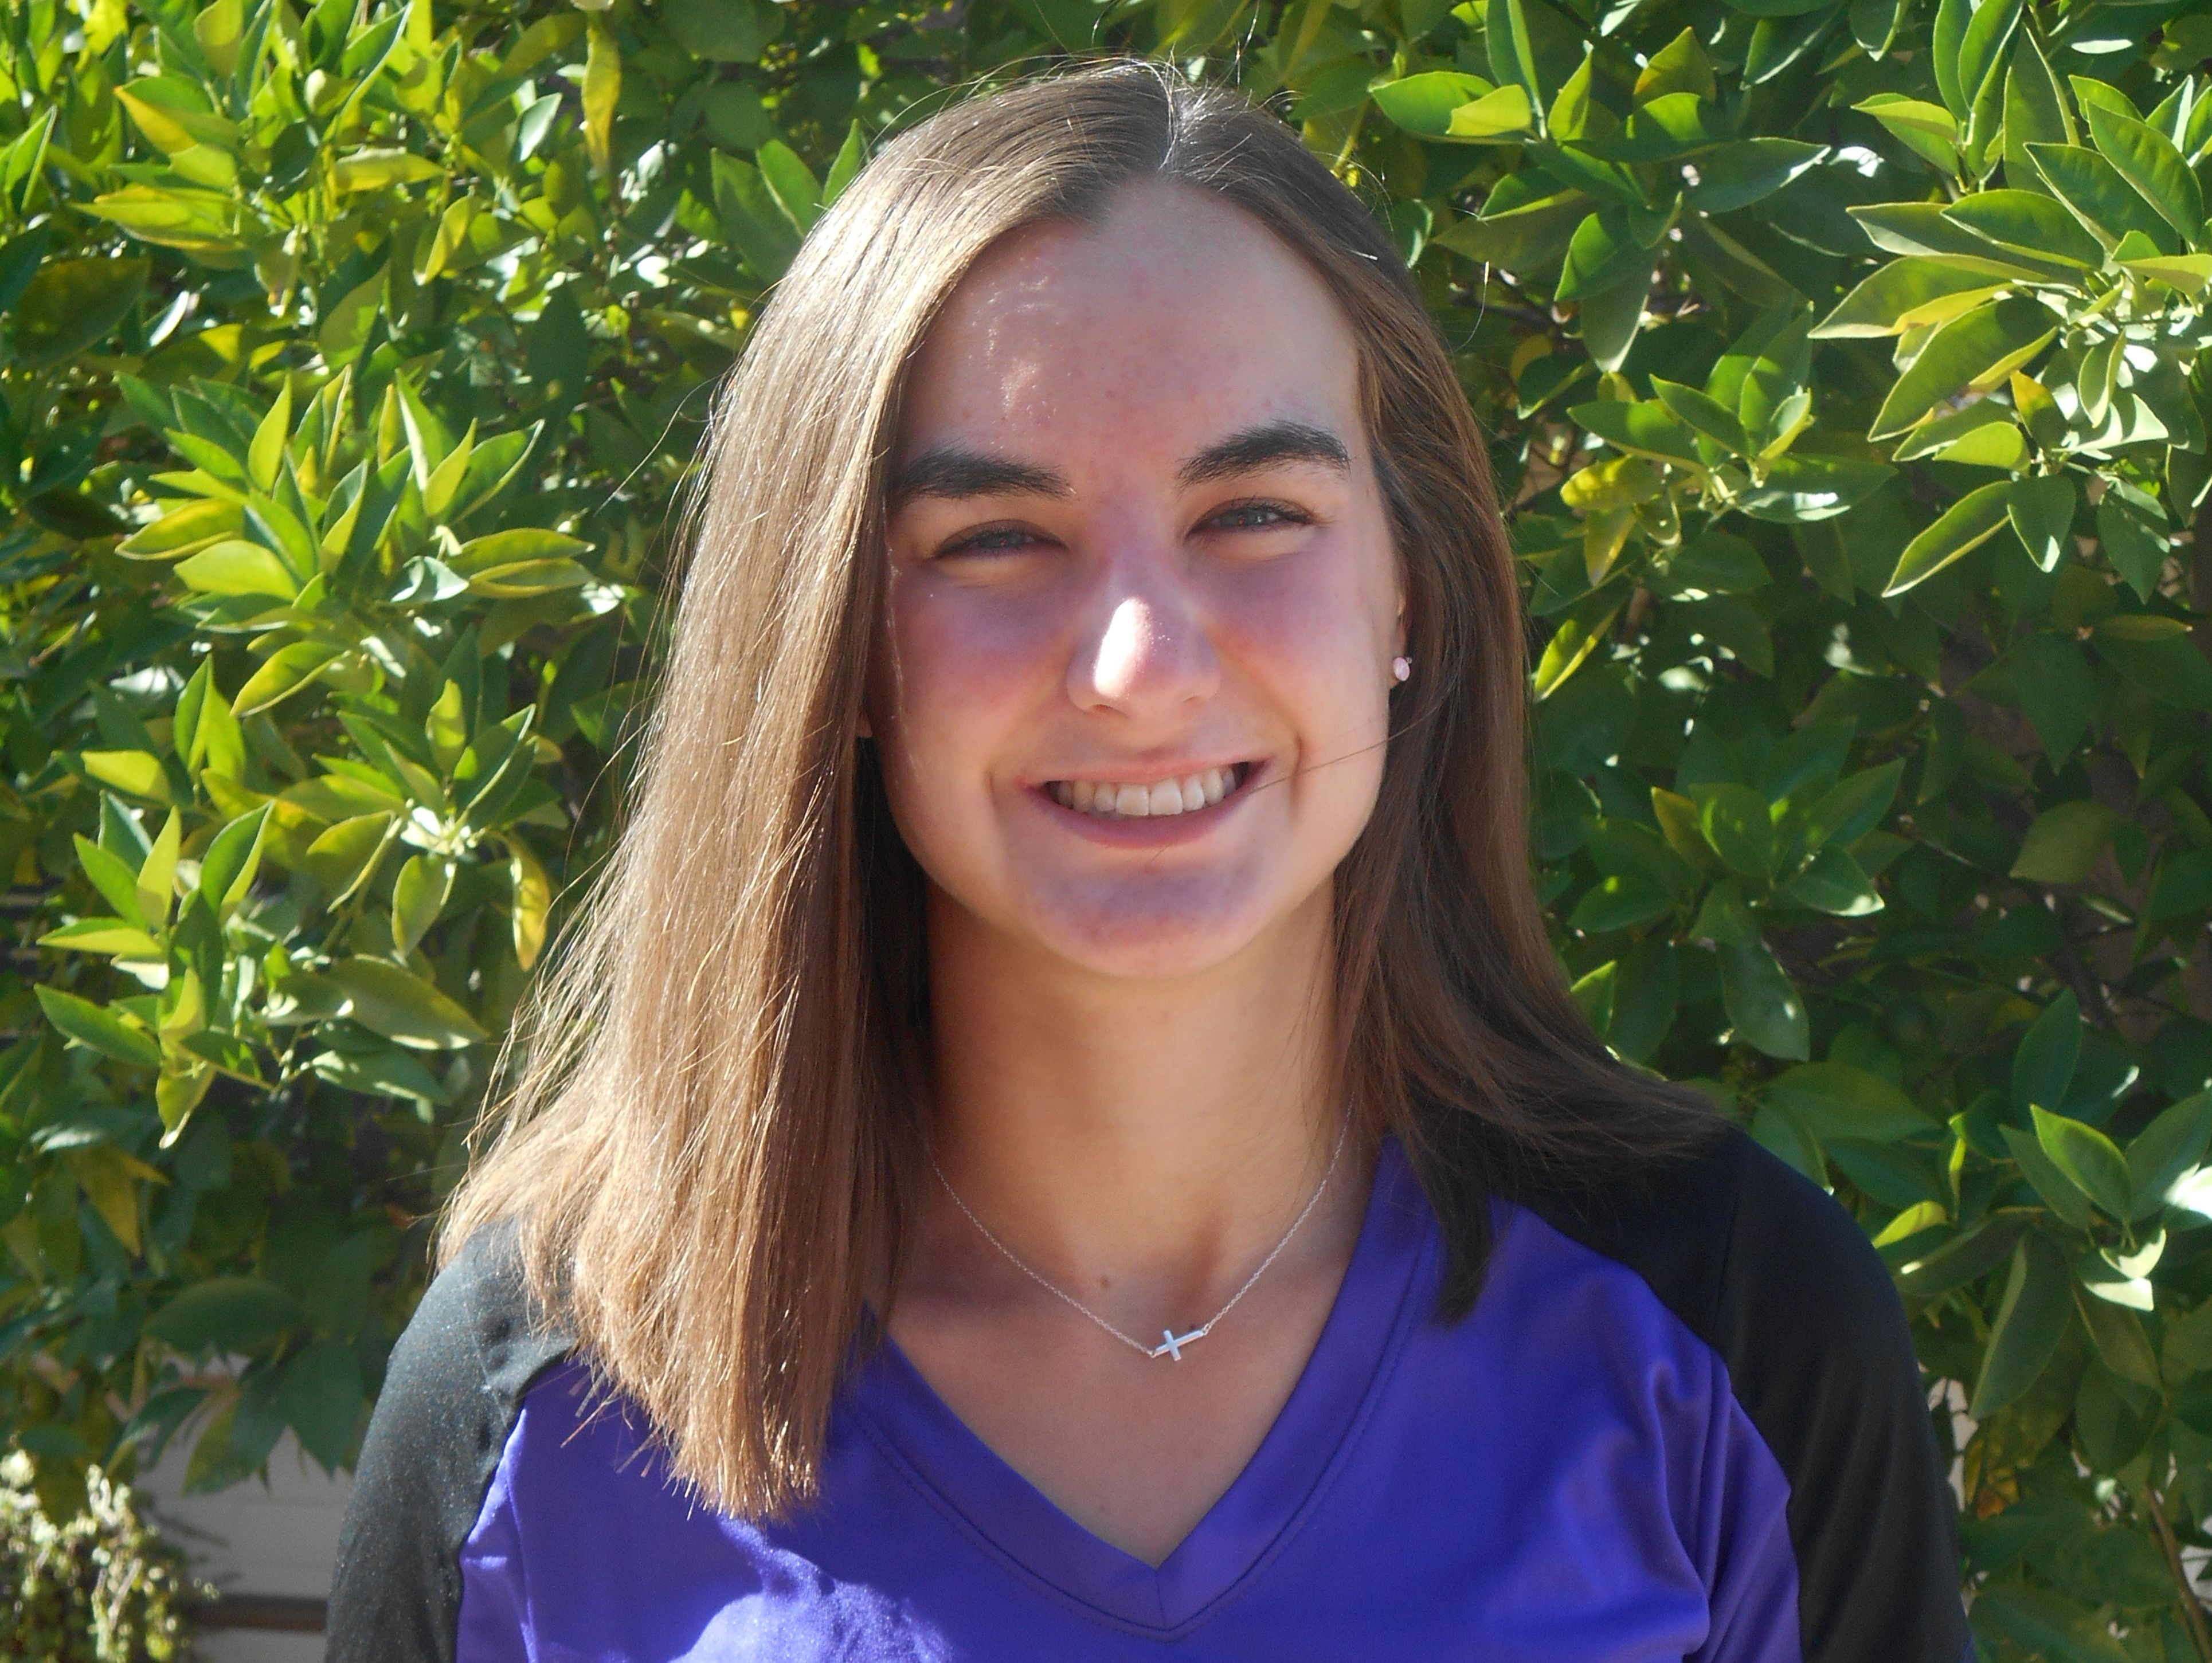 Hannah Hansen, from Chandler Arizona College Prep, is azcentral sports' High Achiever of the Week for May 5-12.